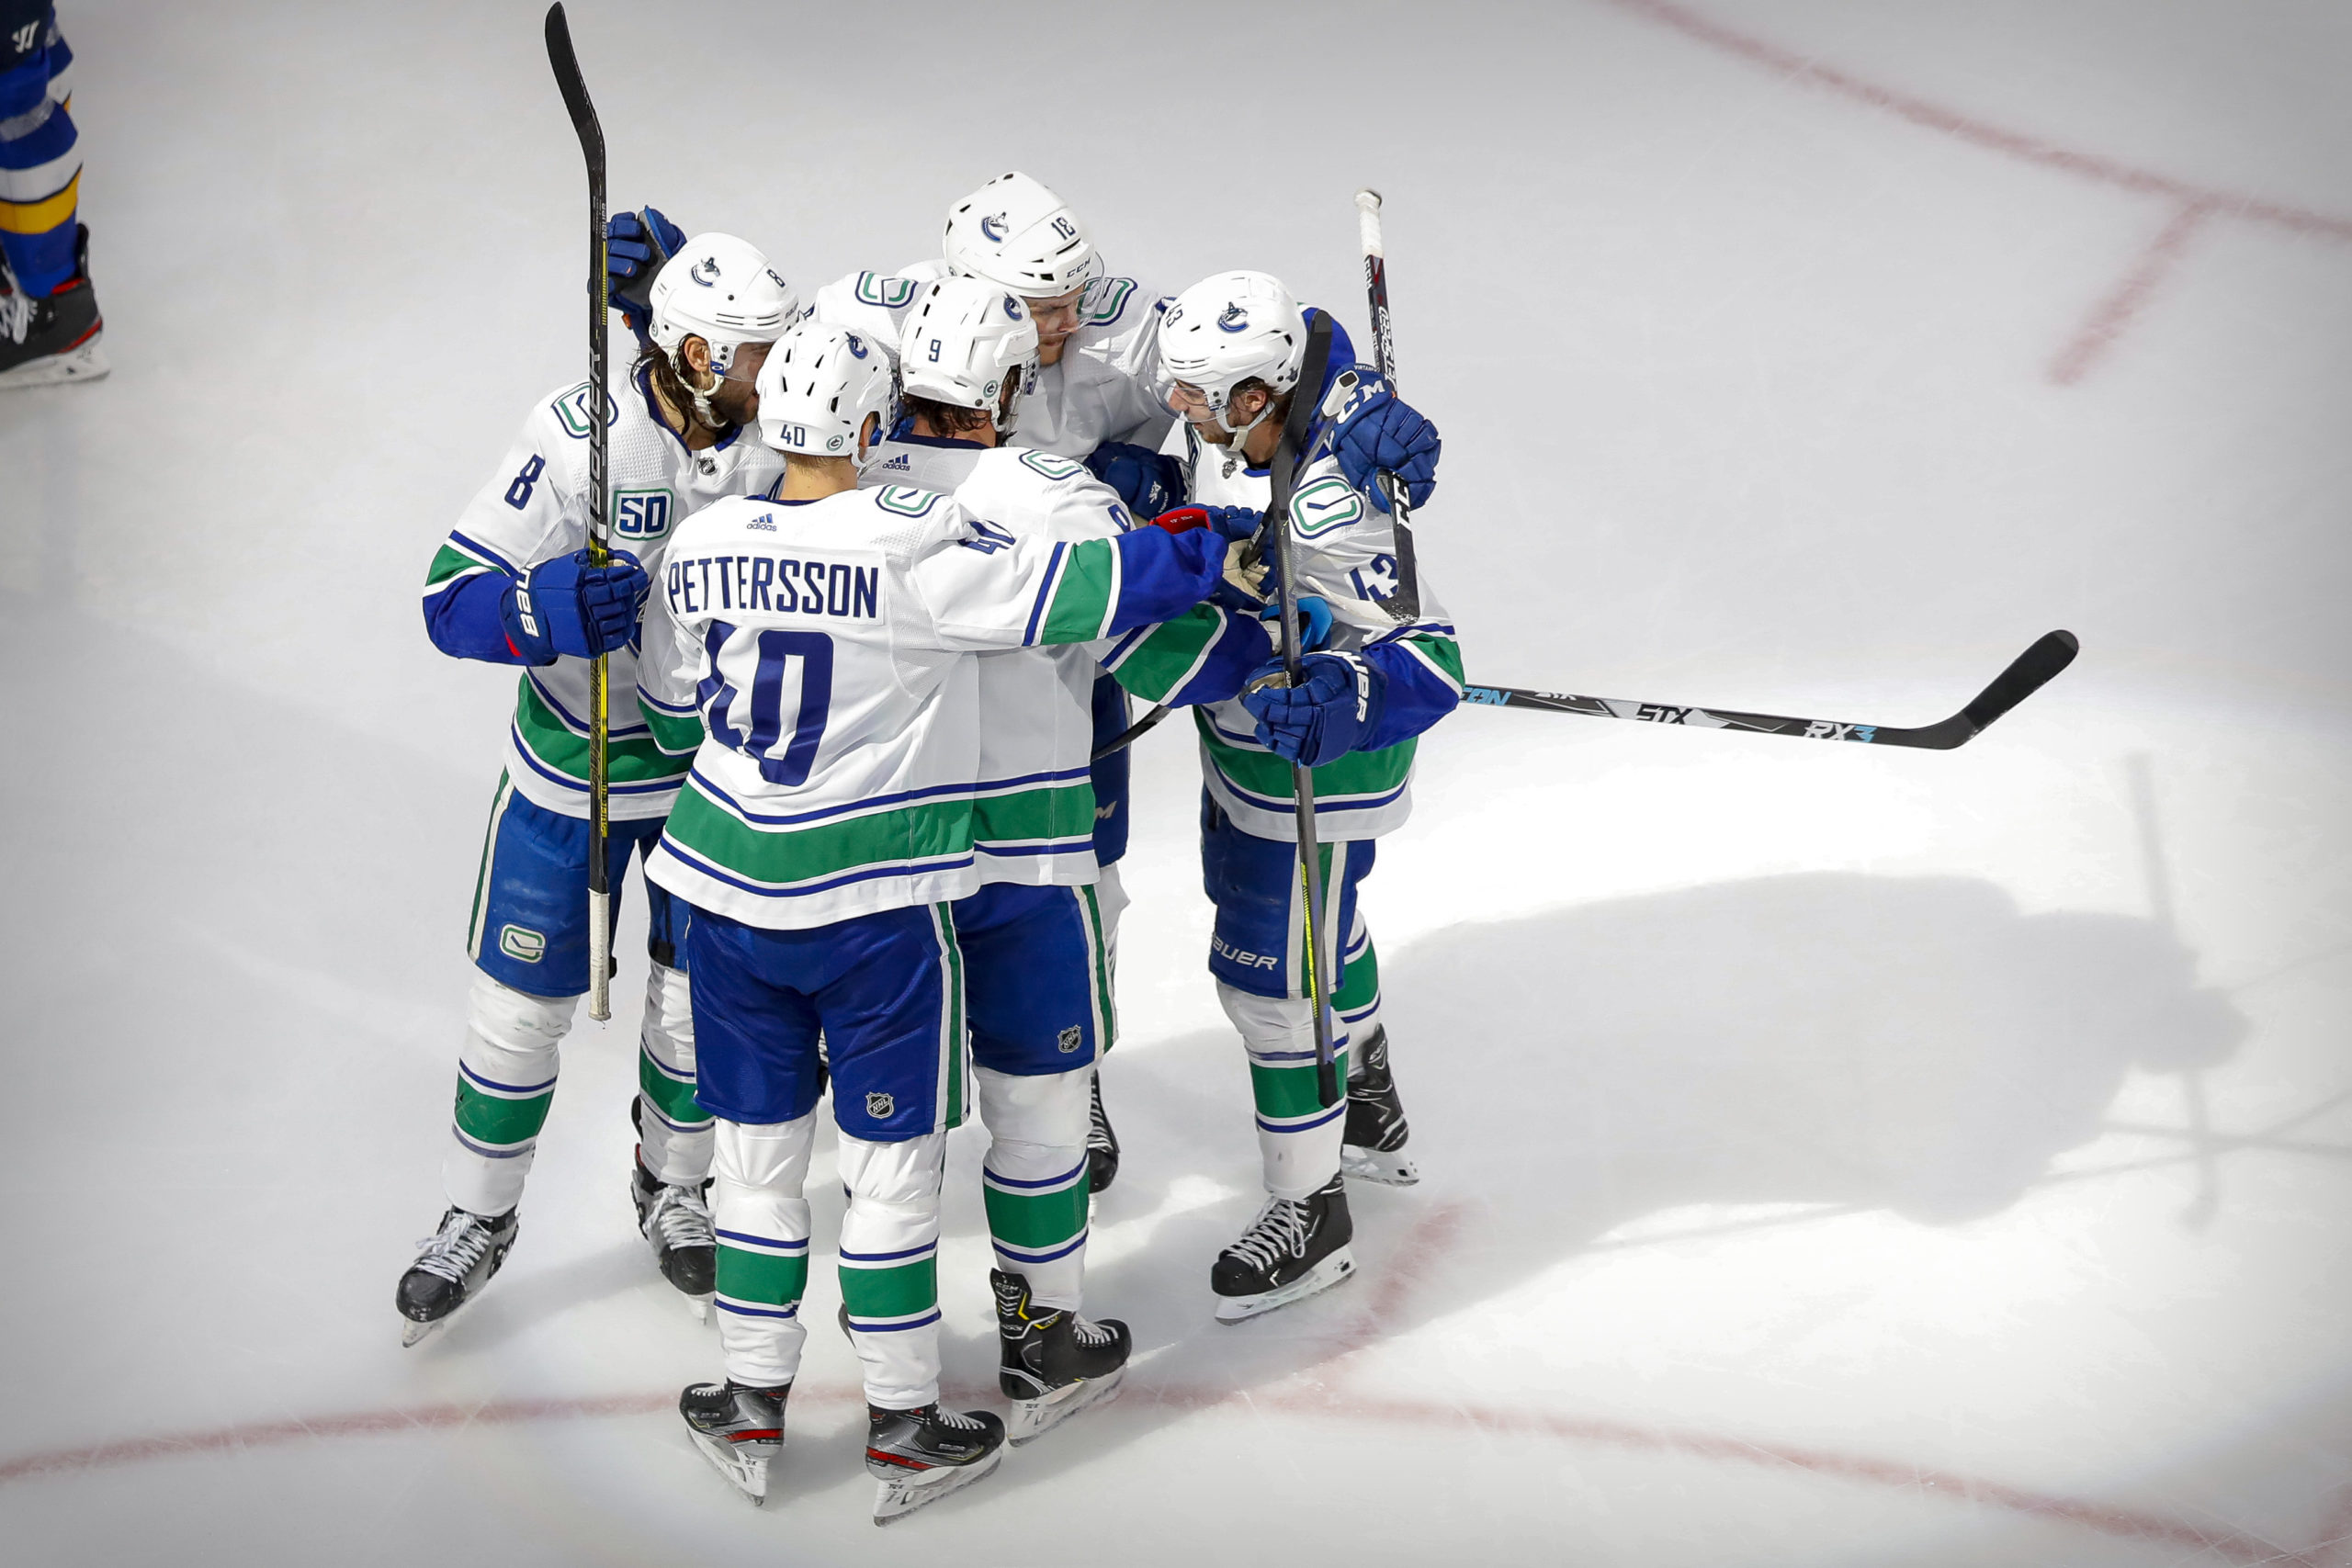 Nhl hockey betting trends ncaa vegas sports betting explained point